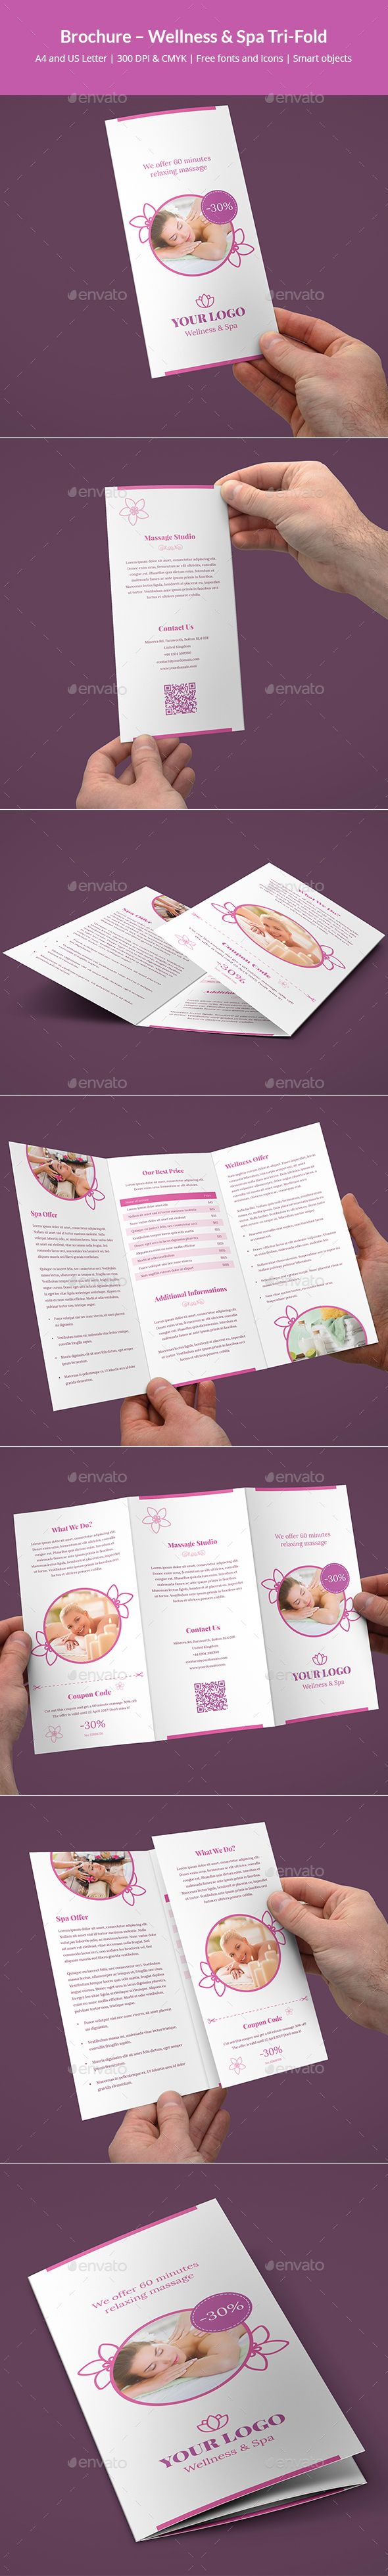 #Brochure – Wellness and Spa Tri-Fold - #Corporate #Brochures Download here: https://graphicriver.net/item/brochure-wellness-and-spa-trifold/19506014?ref=alena994